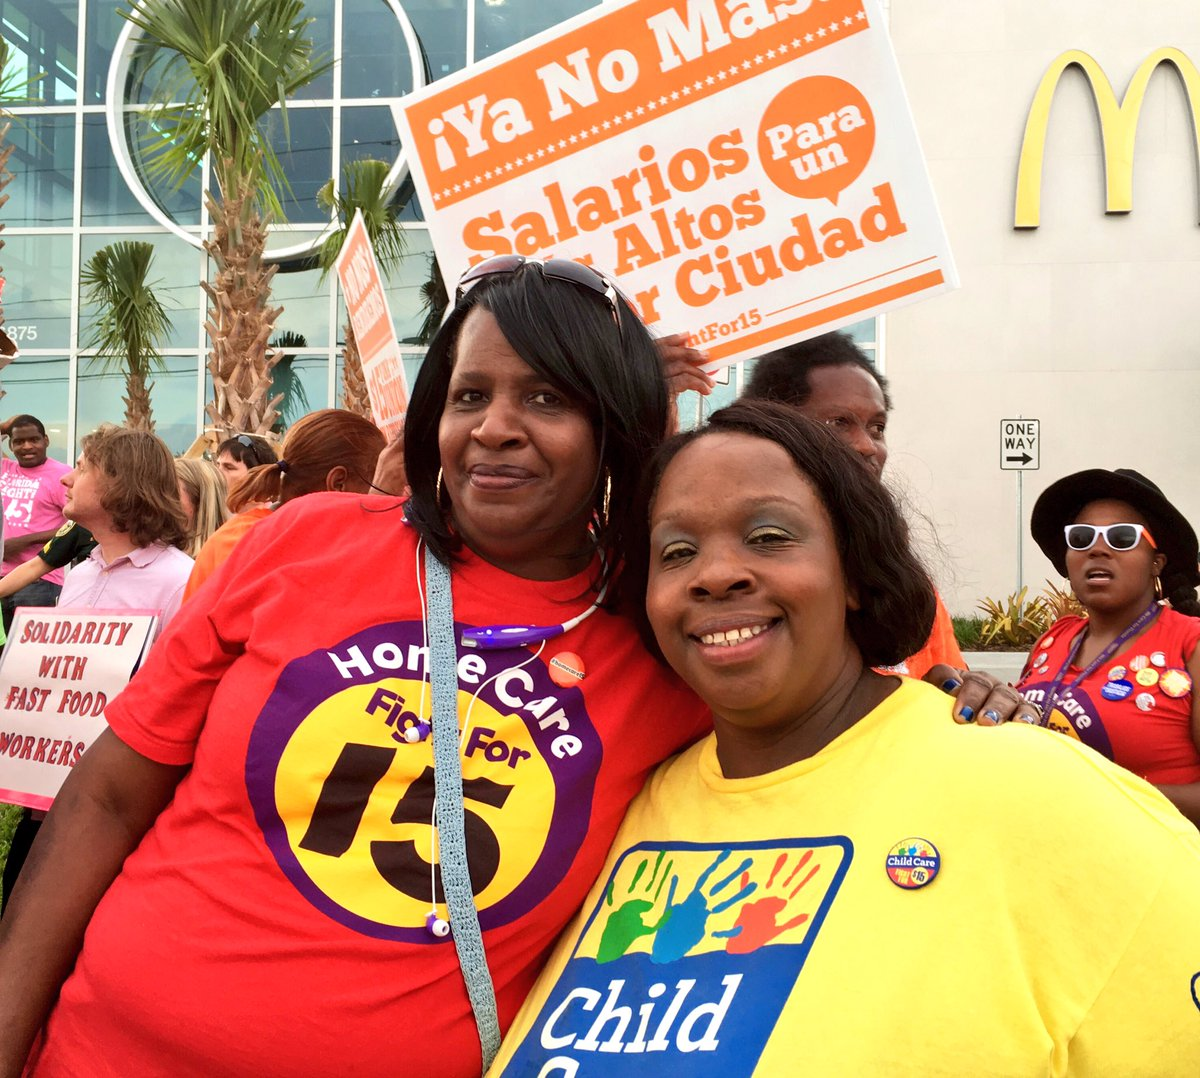 #Homecare & childcare workers in Florida are fighting for a better future for everybody #FightFor15 #ChildCareForAll https://t.co/GEplz6P9gJ